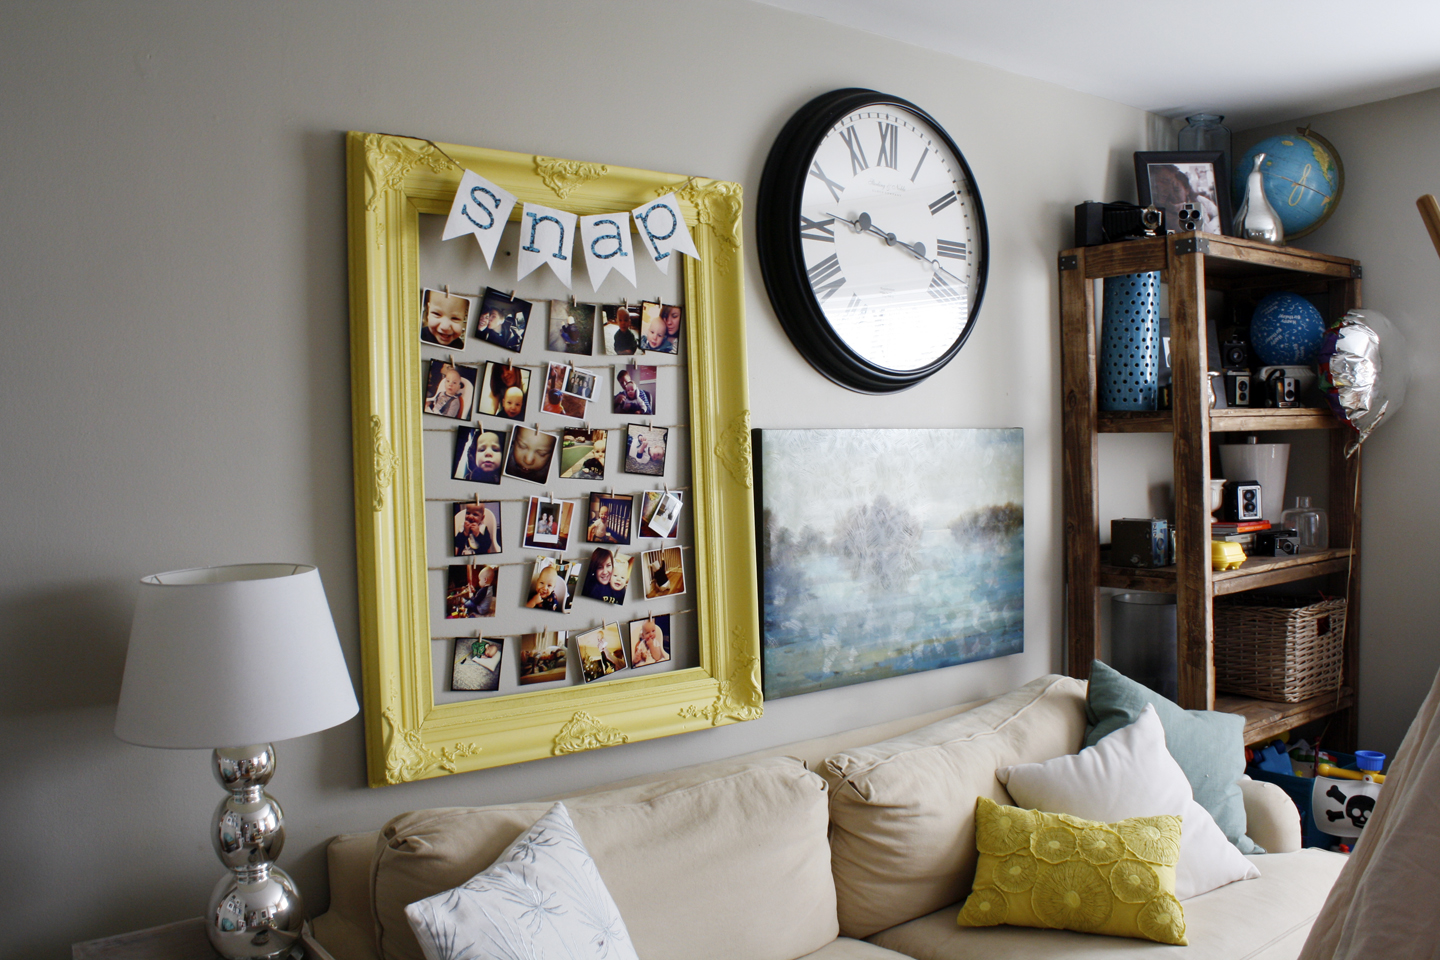 Laundry Cakes Diy Wall Frame Photo Collage